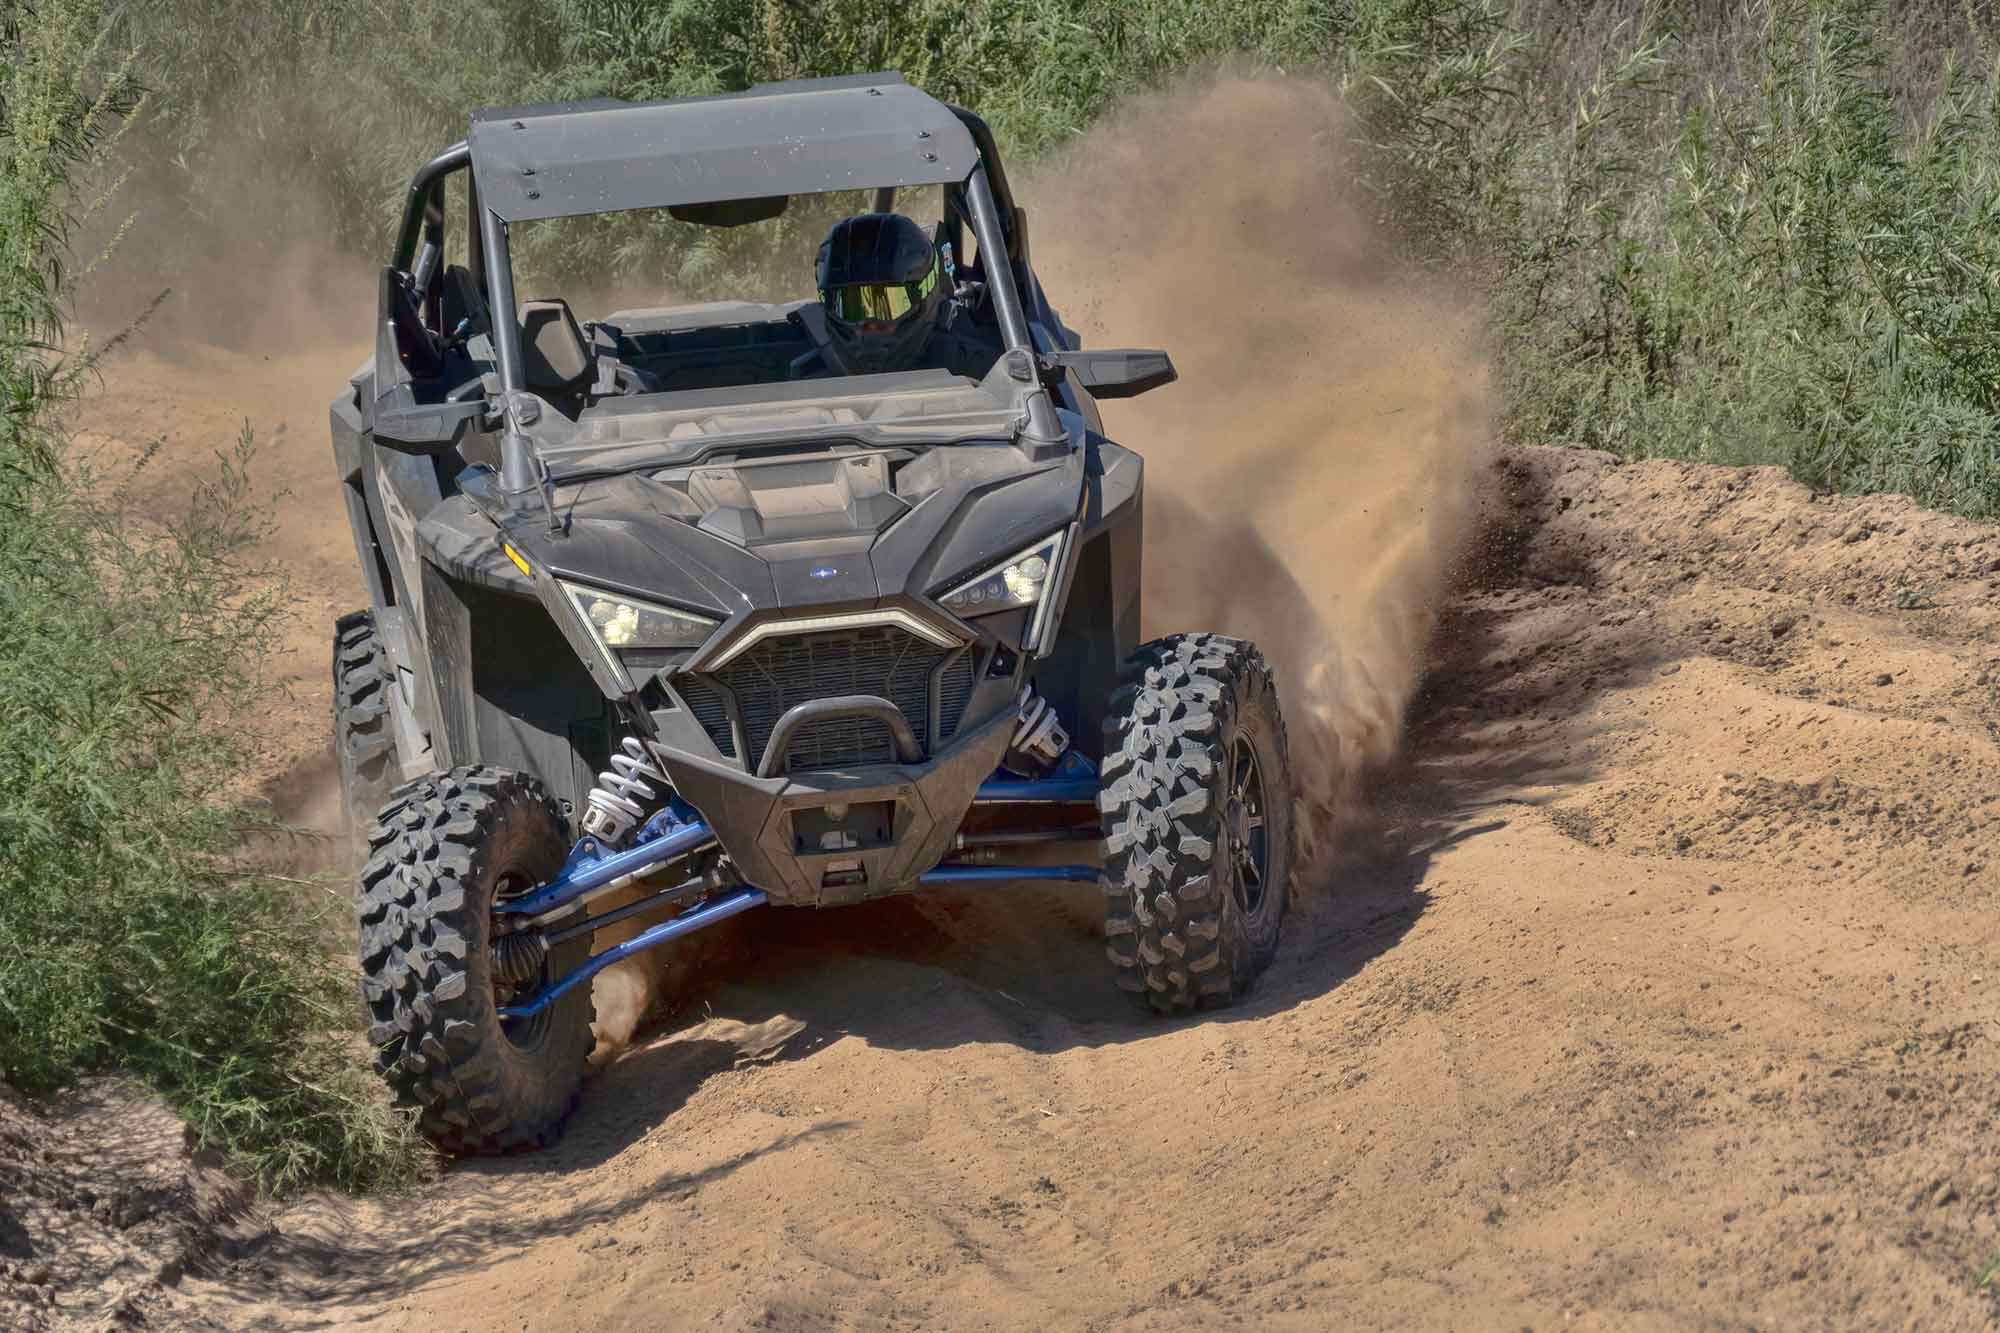 Steering feel is muted, but front-end traction is fairly strong. The stock Maxxis Carnivore tires are great all-terrain meats.